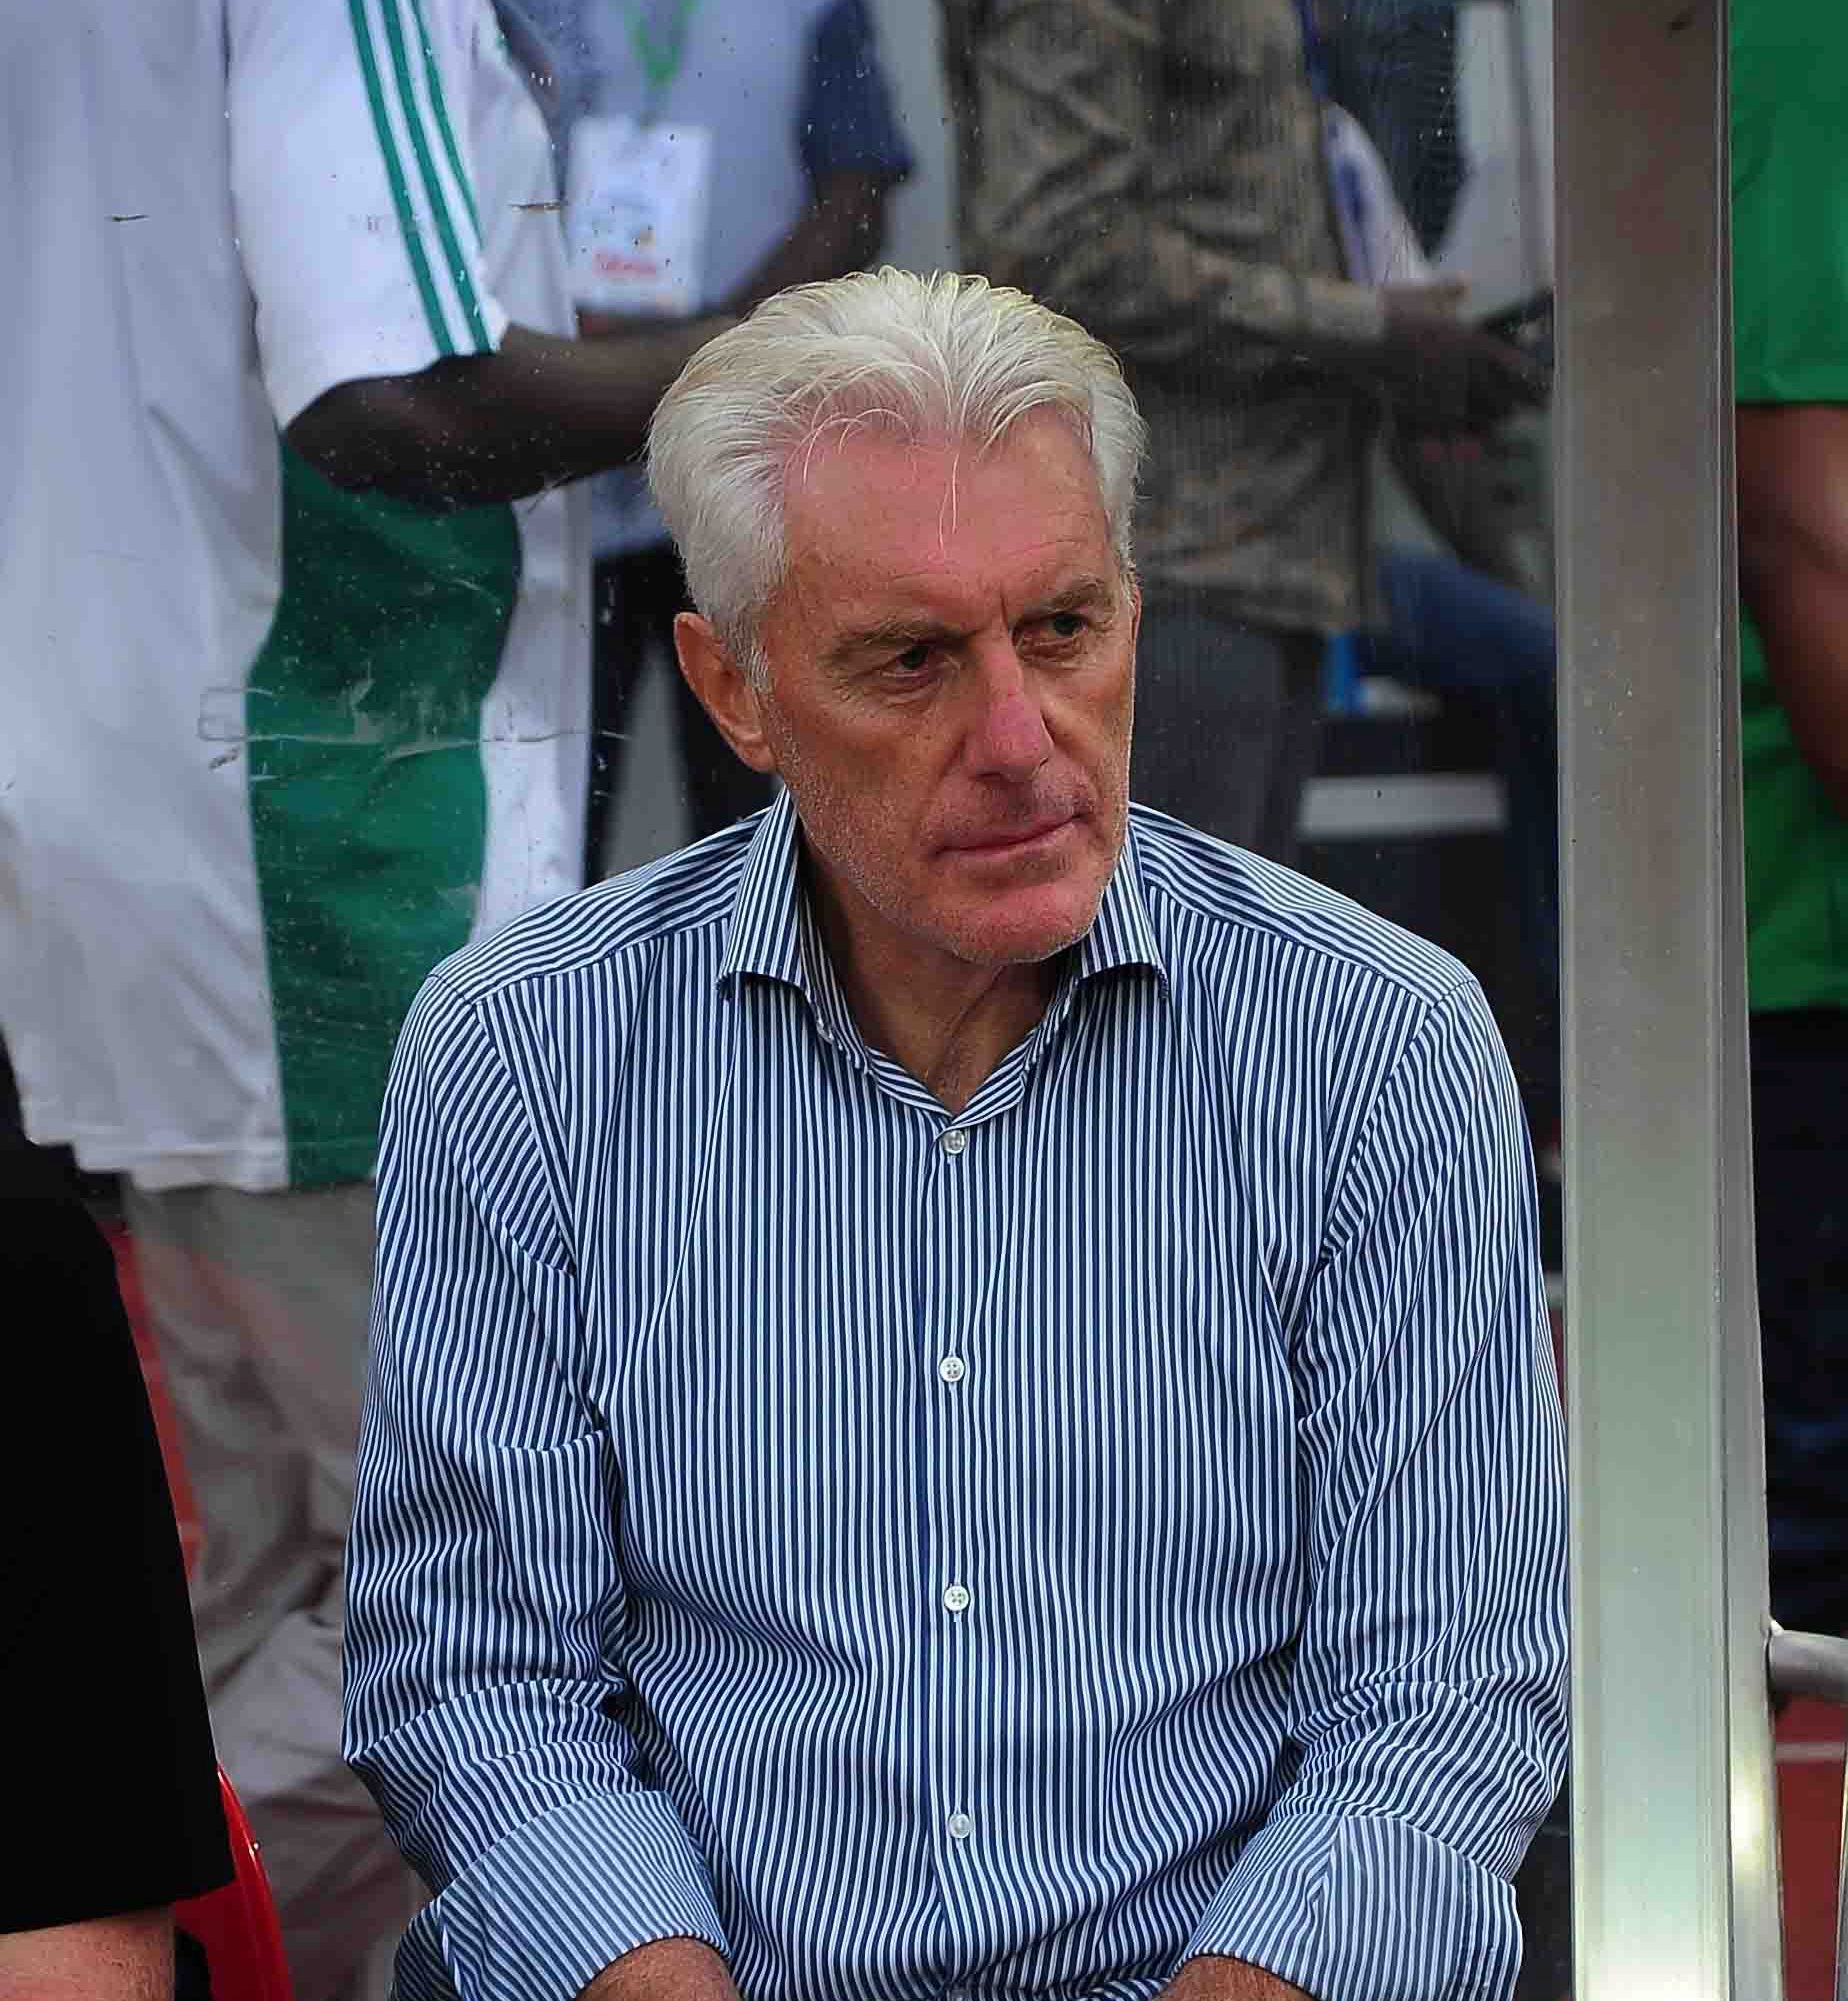 Cameroon Coach Surrenders, Admits Lions' World Cup Dream Over